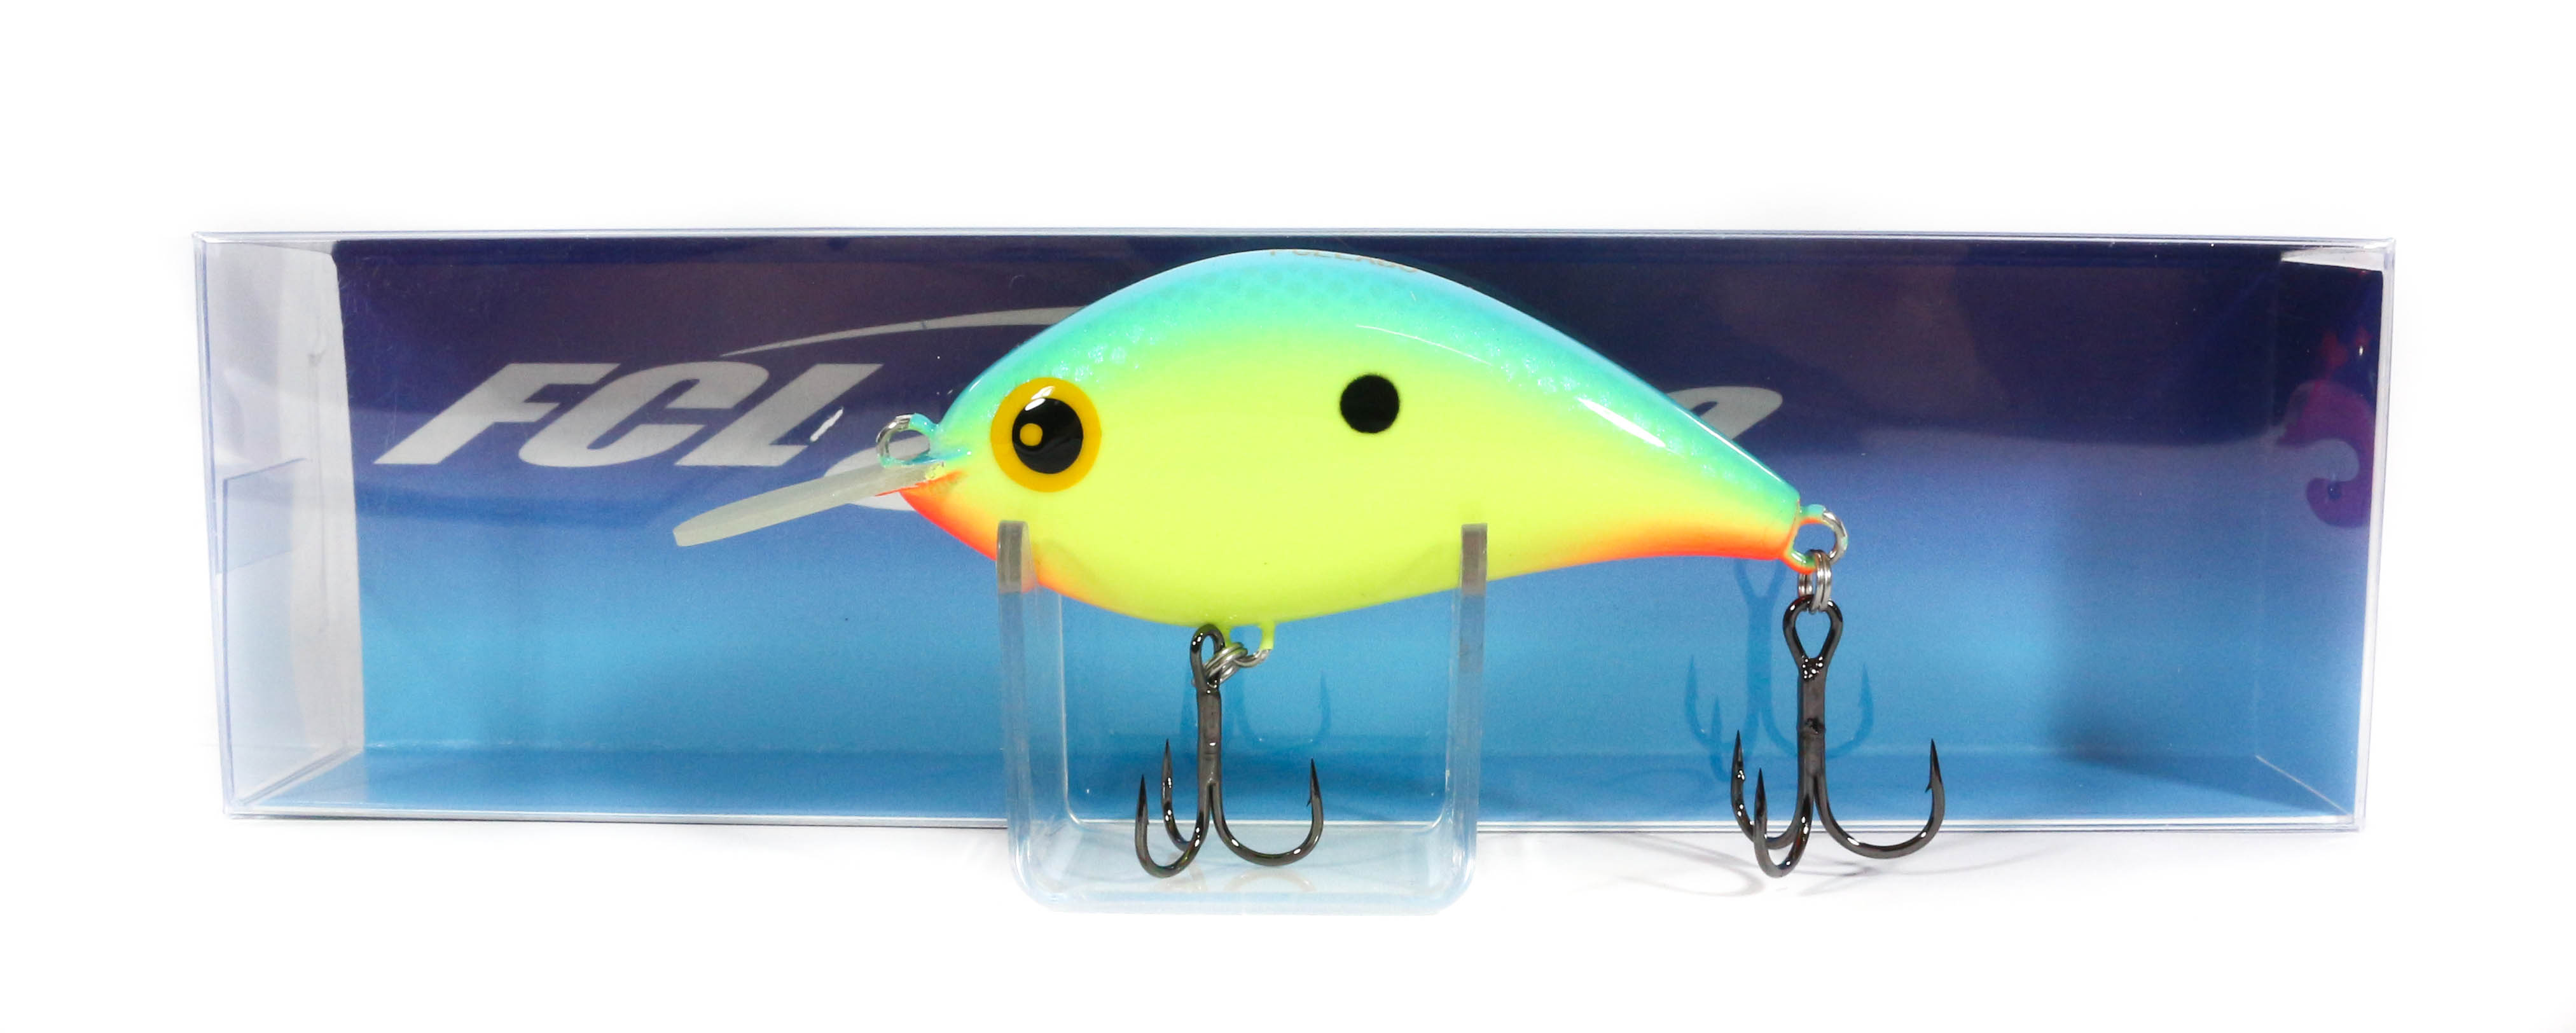 FCL Labo Lure TKC 60 Floating Lure DO (3894)